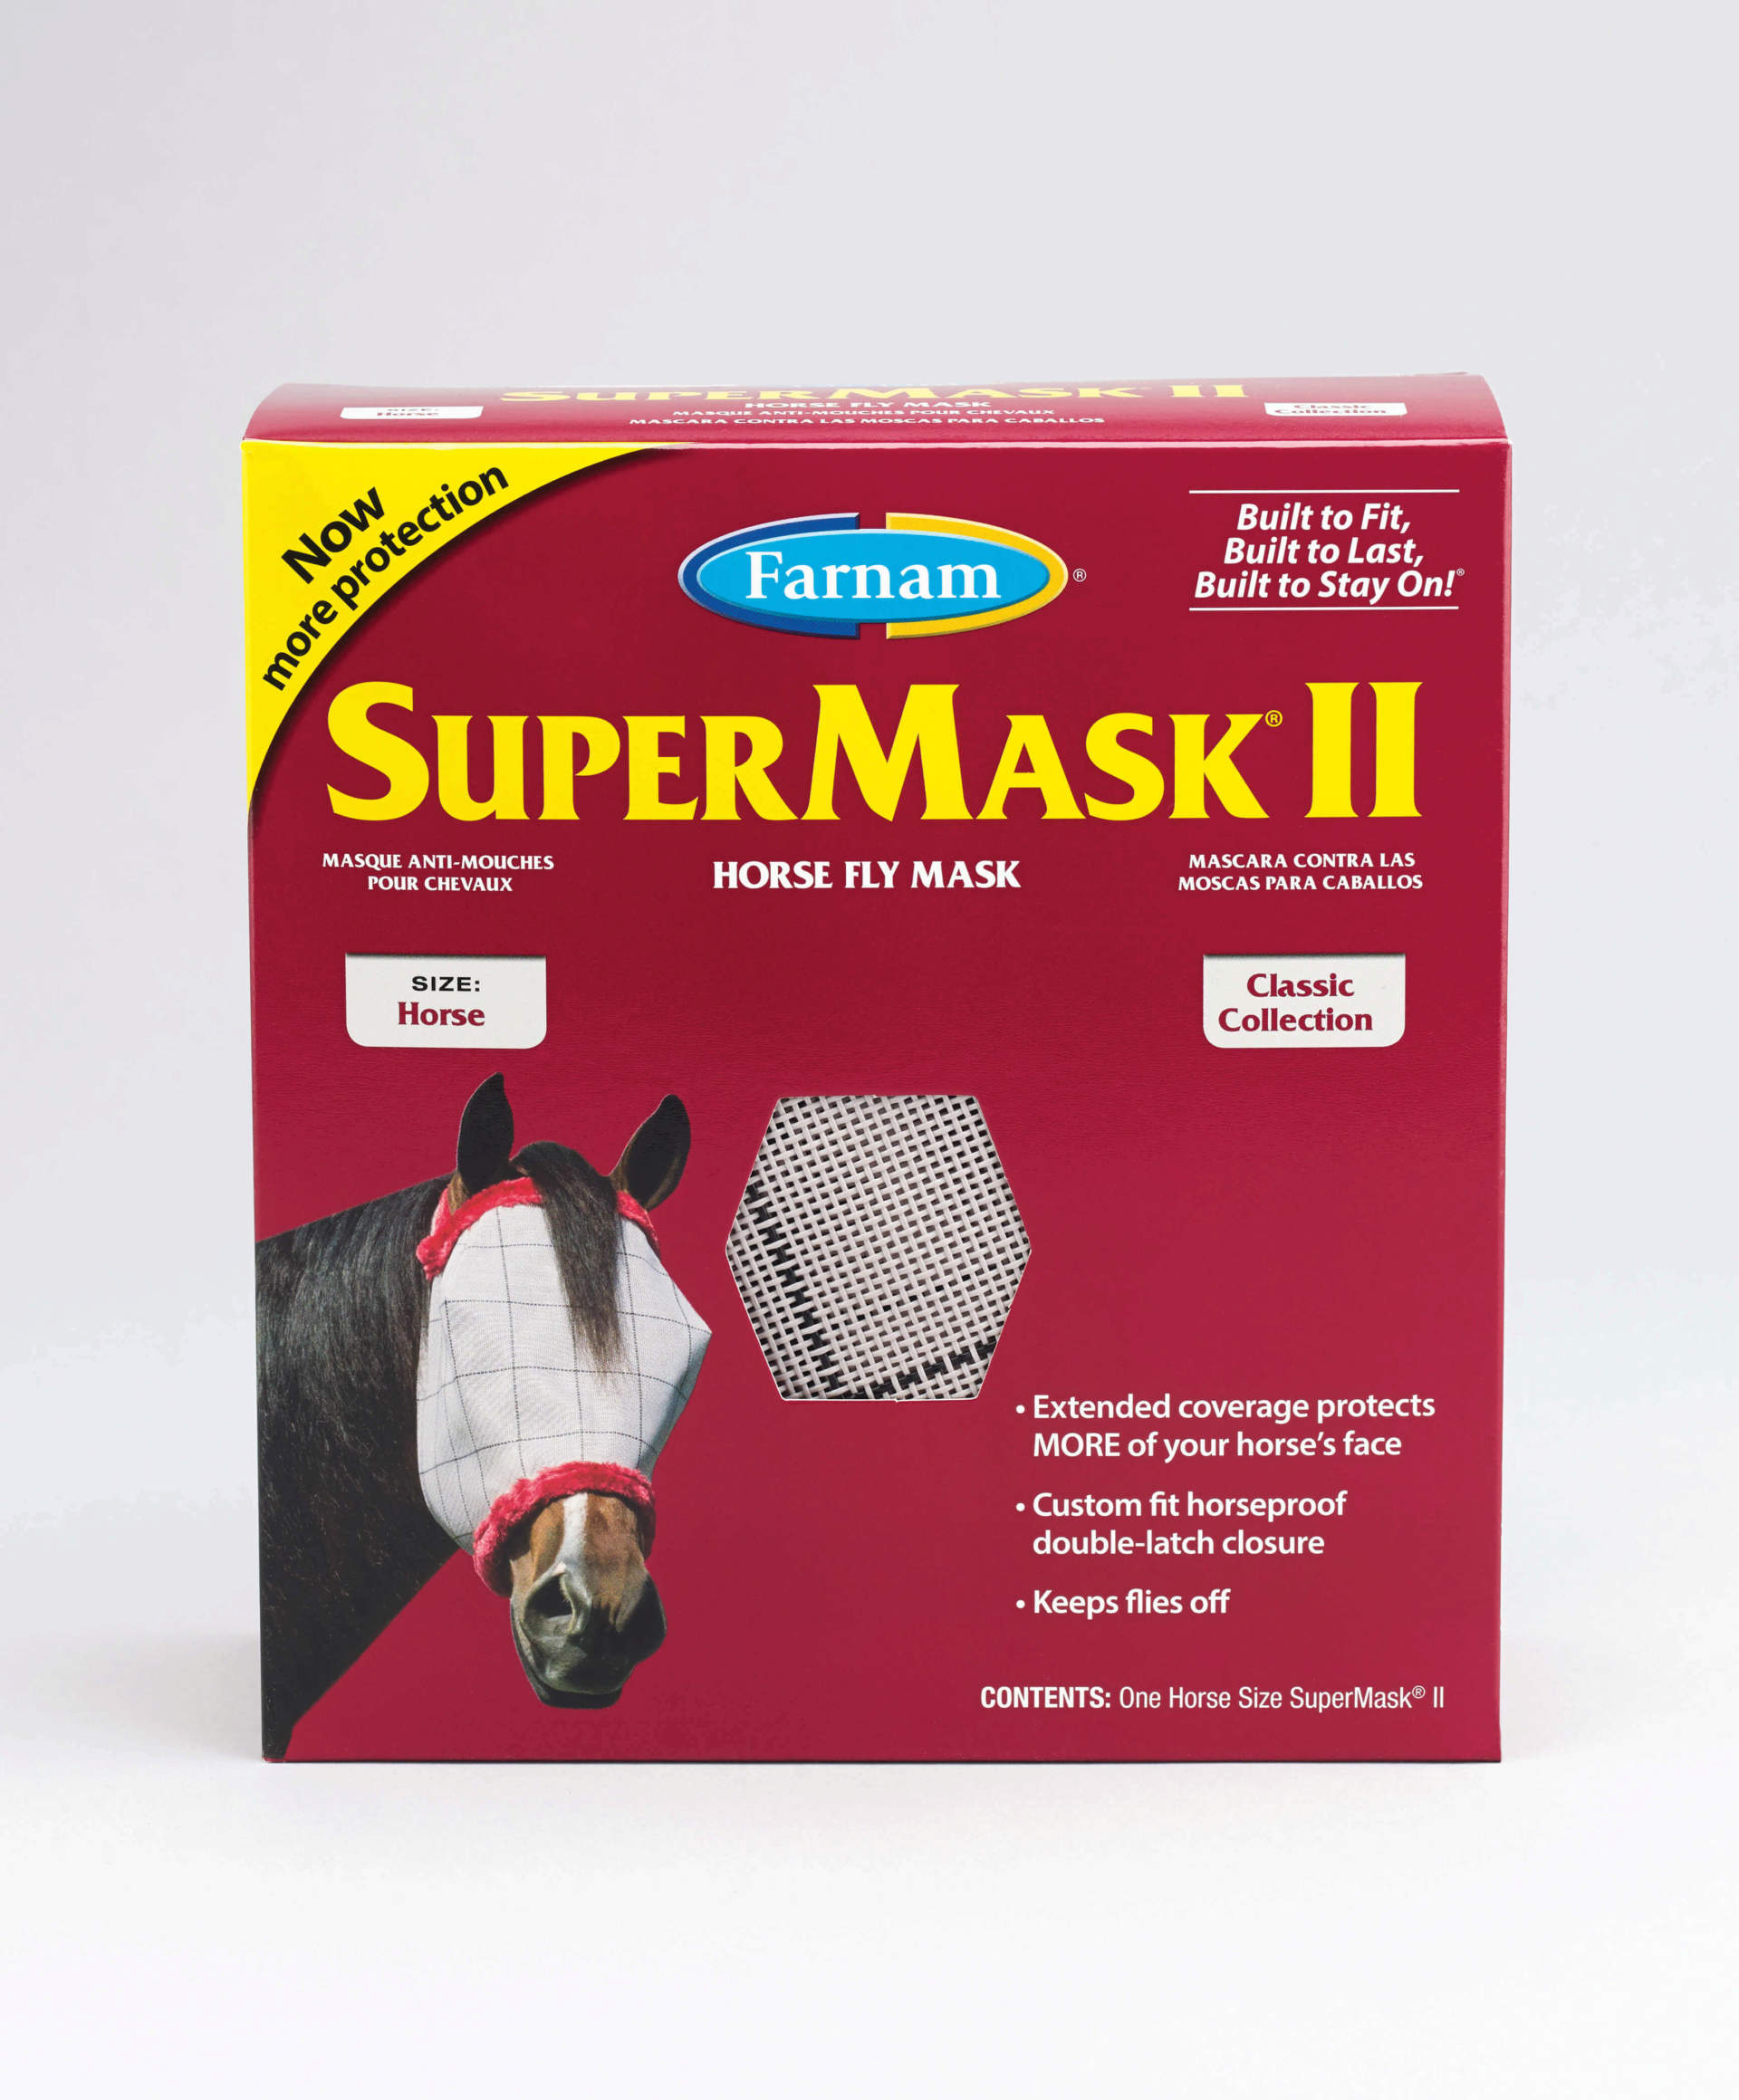 New and Improved Farnam SuperMask II now with more nose coverage